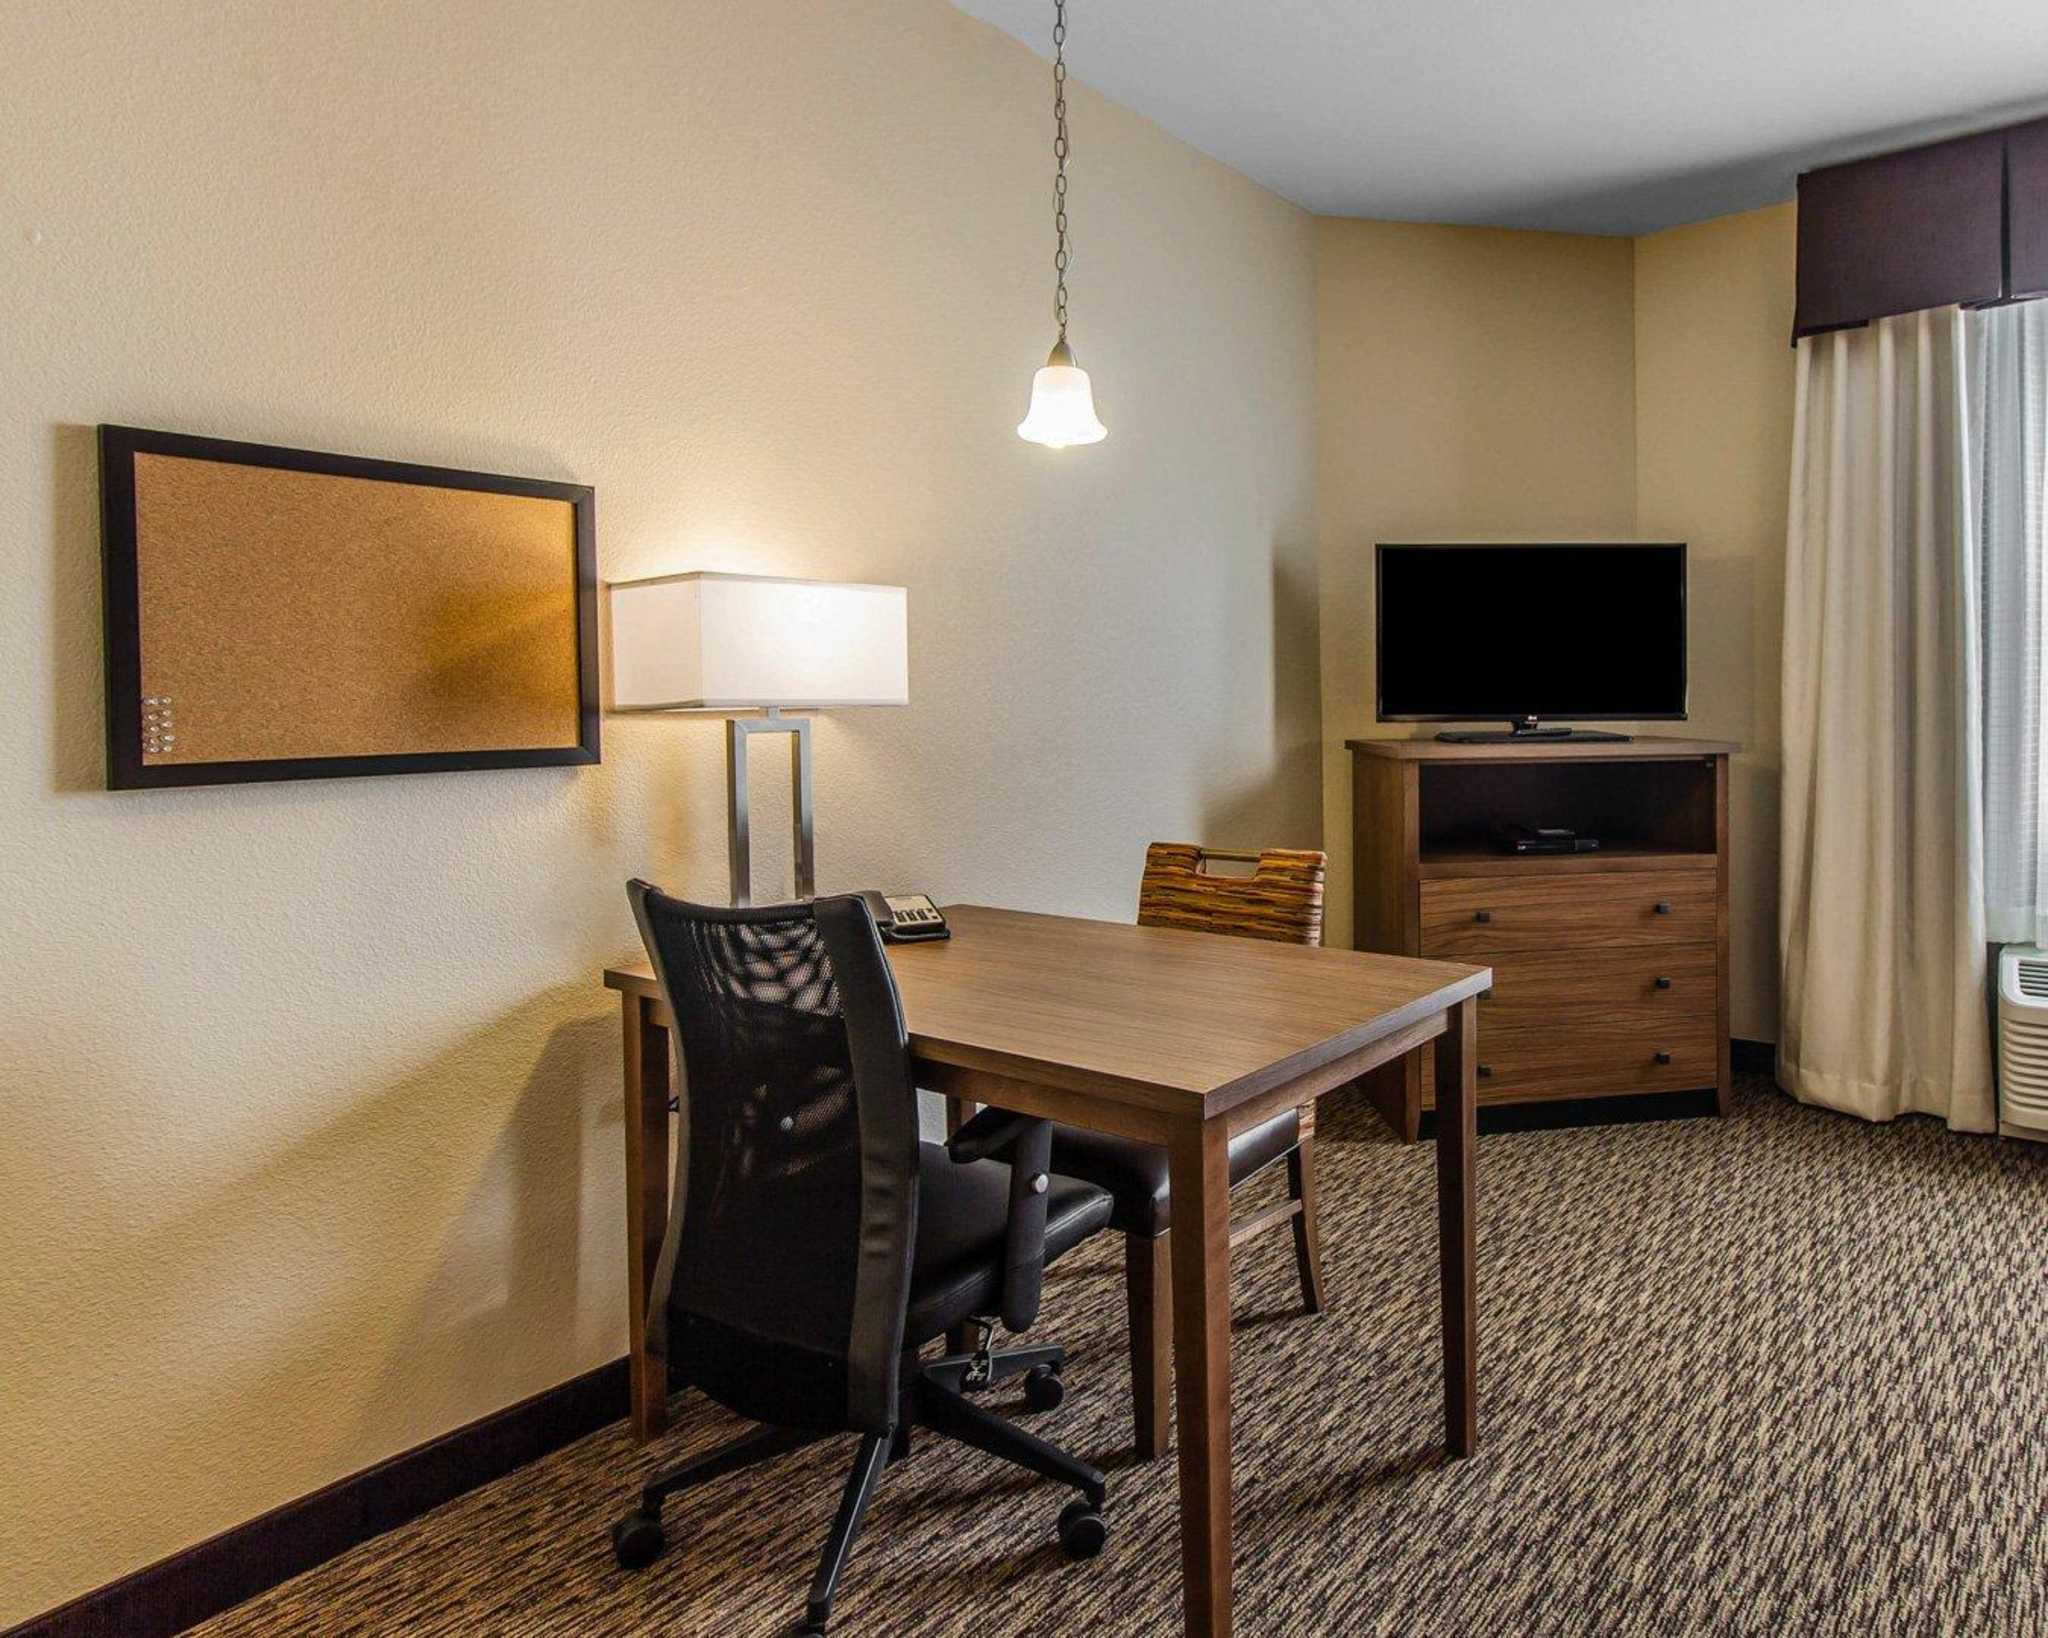 MainStay Suites Event Center image 12